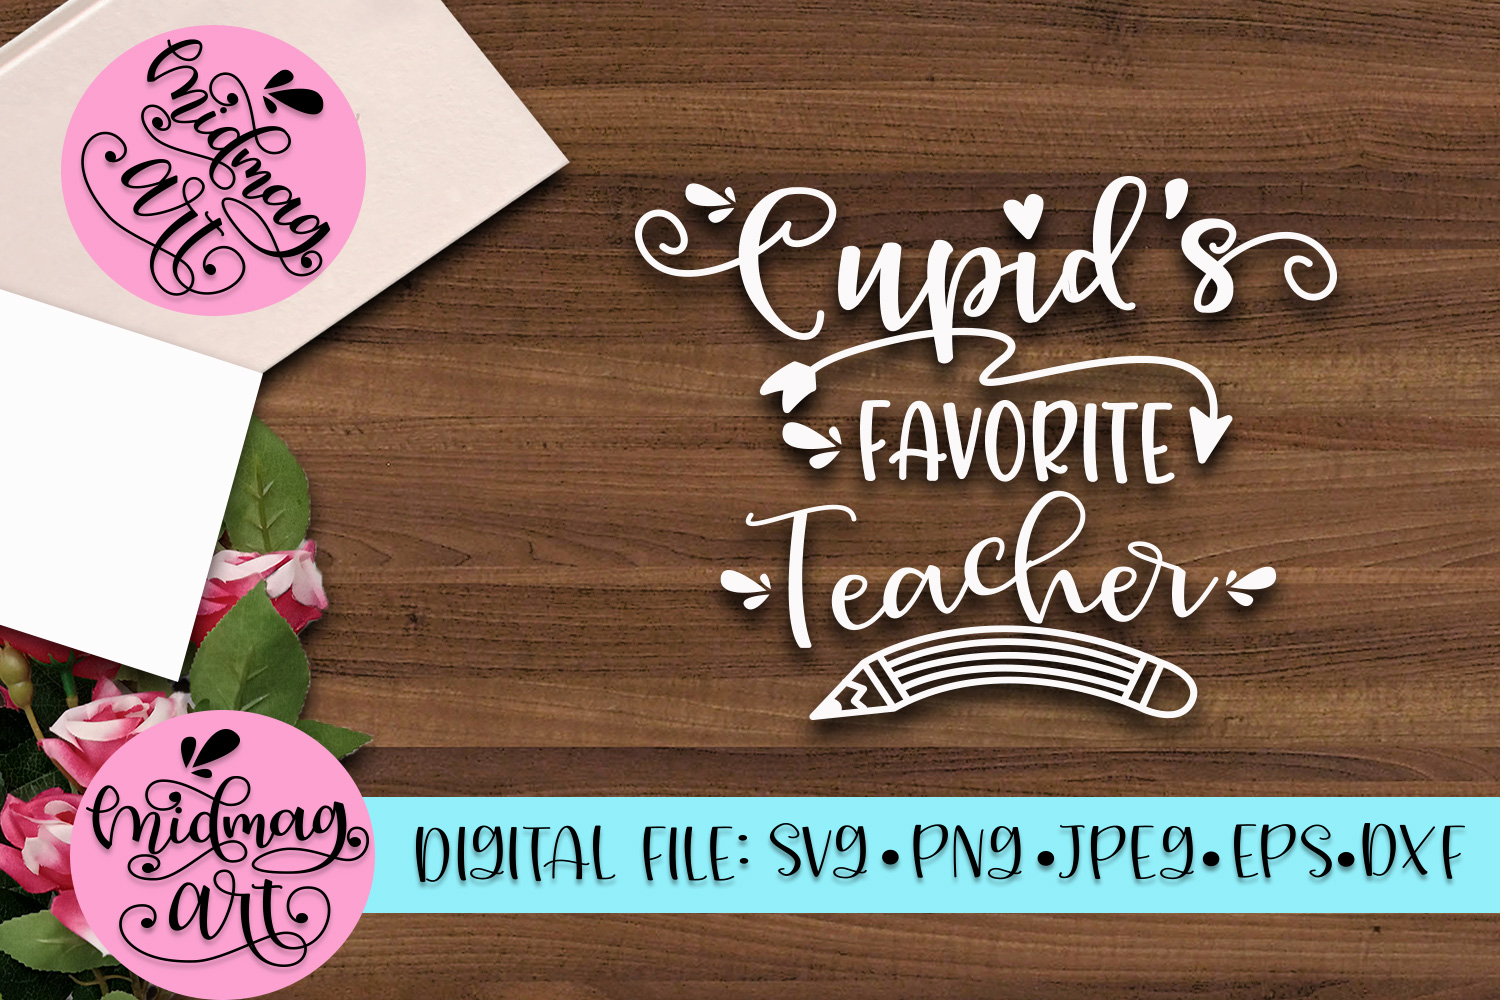 Cupids's favorite Teacher svg, png, jpeg, eps and dxf example image 2